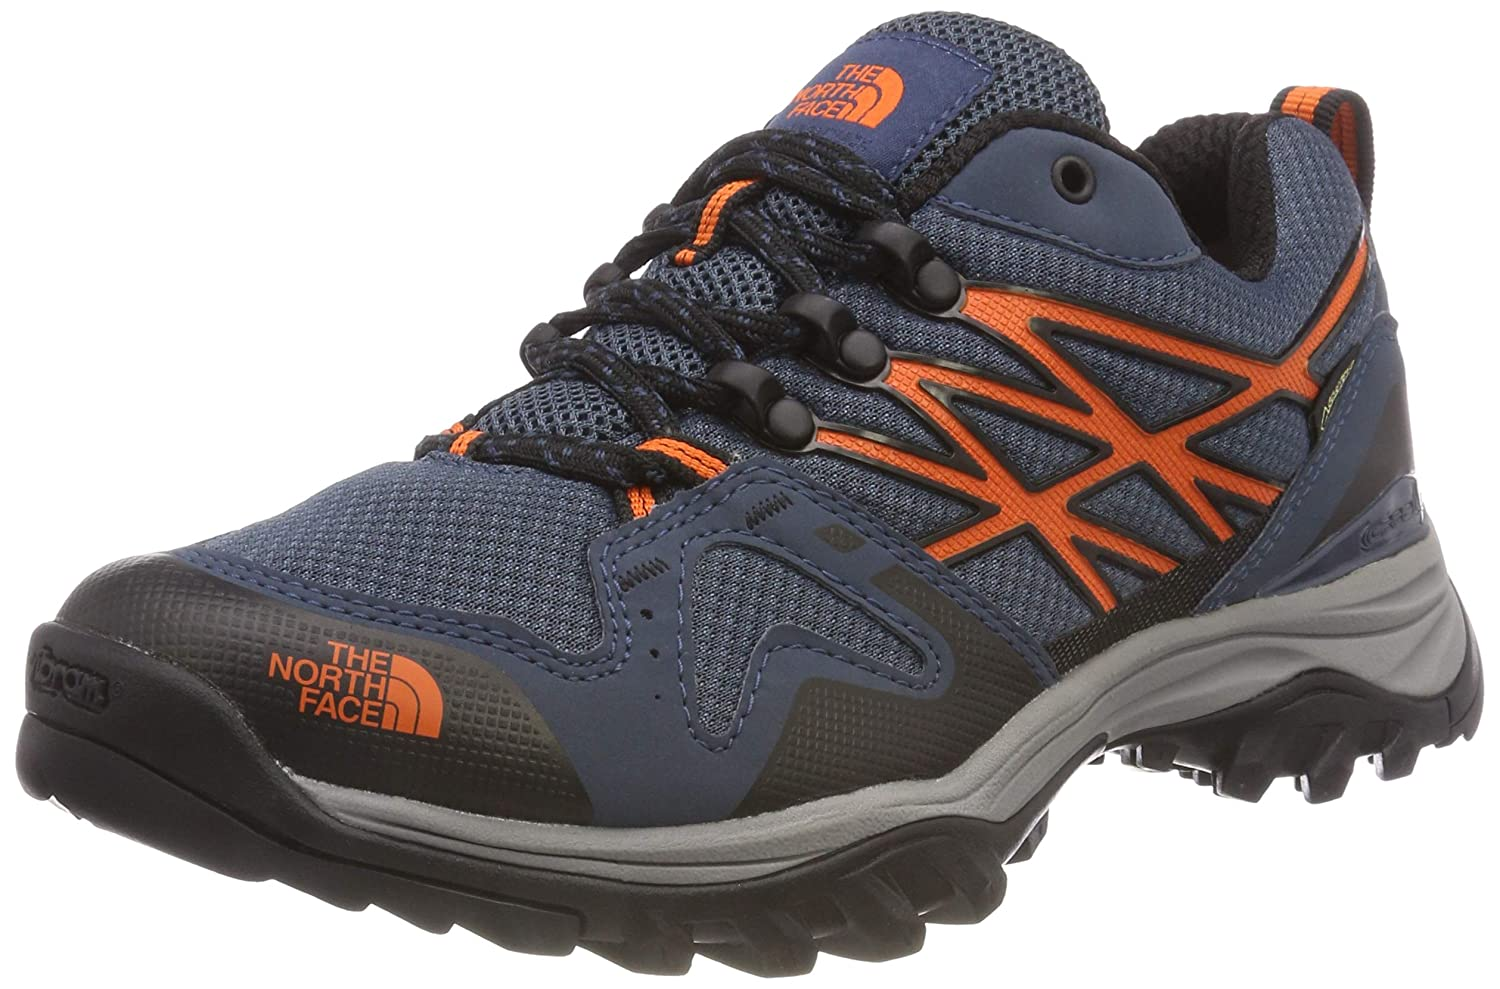 TALLA 39 EU. The North Face Hedgehog Fastpack GTX (EU), Zapatillas de Senderismo para Hombre